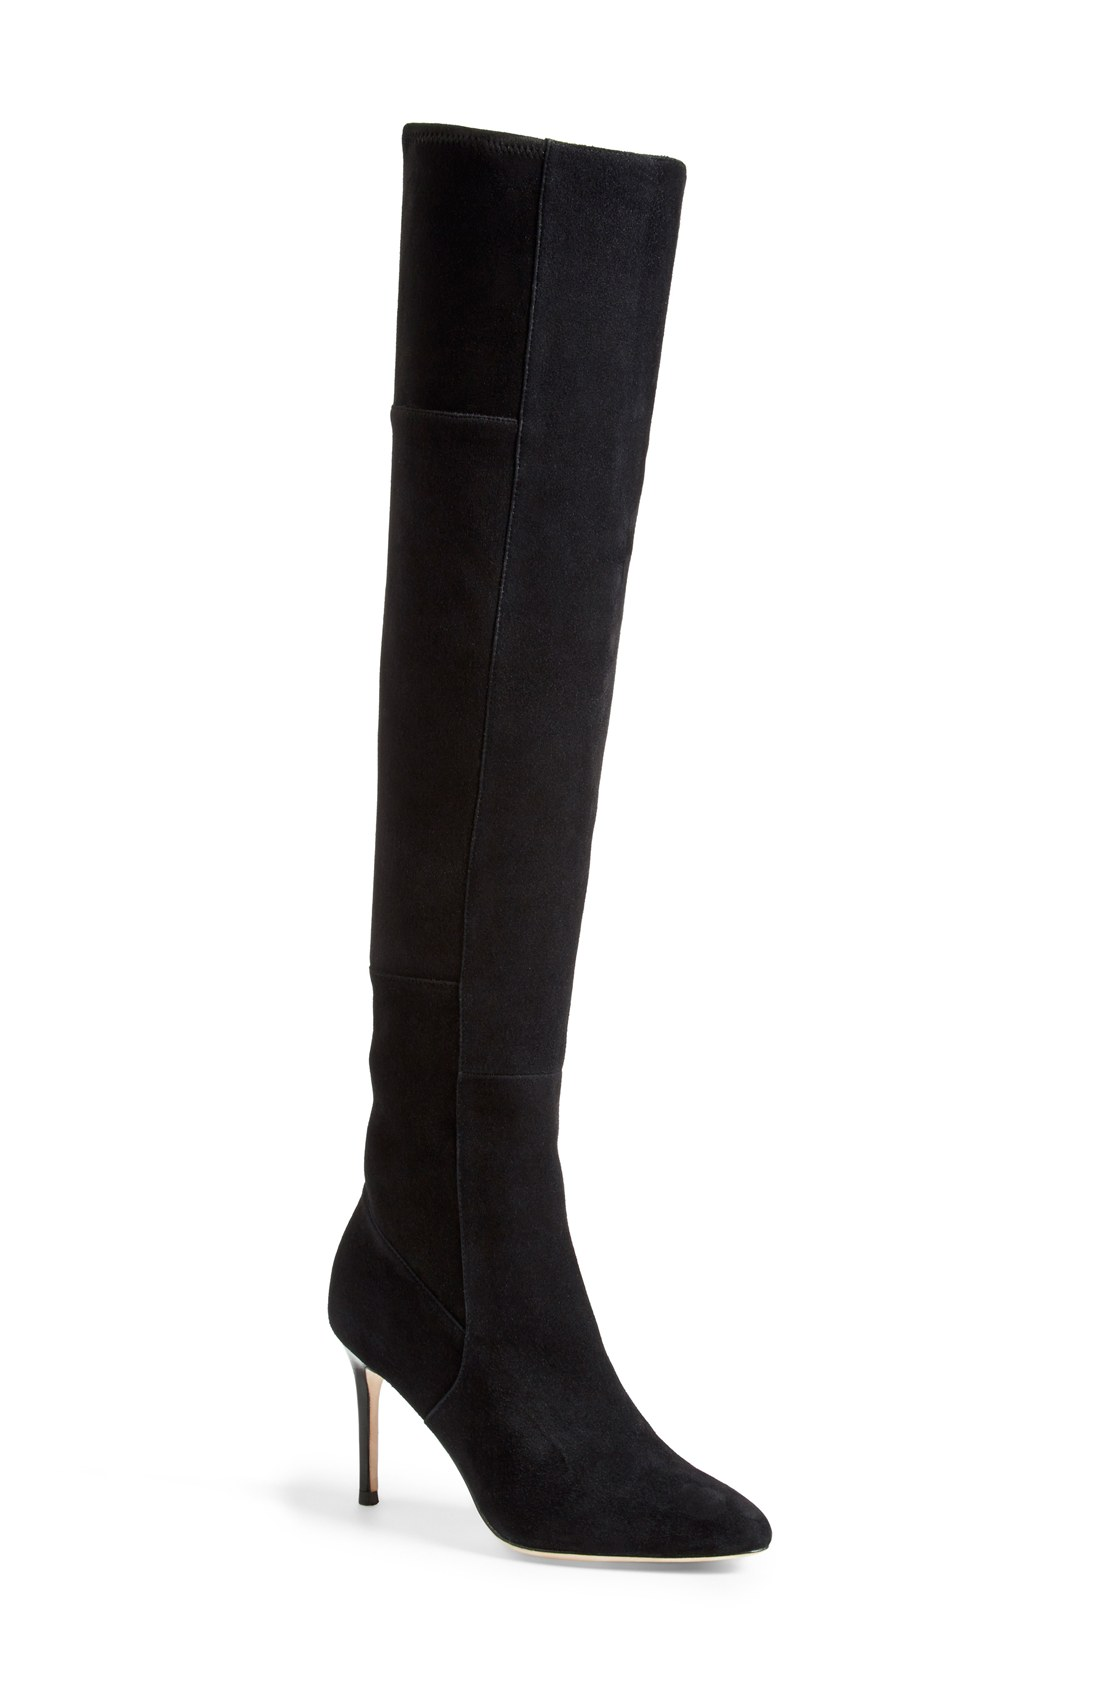 Over The Knee Suede Boots High Heel 2uNZsqNi